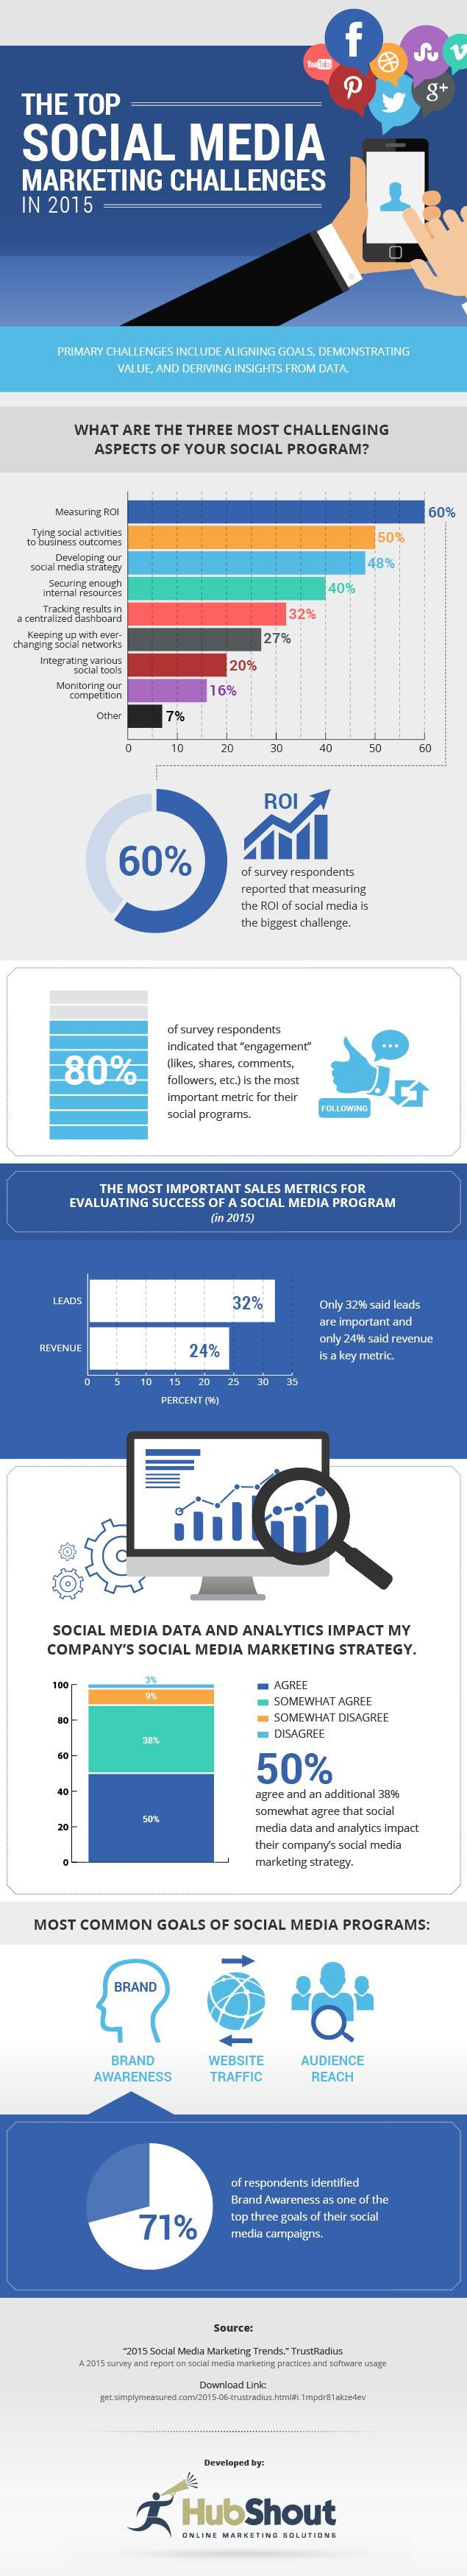 The Top Social Media Challenges in 2015 #socialmedia #smm #ROI